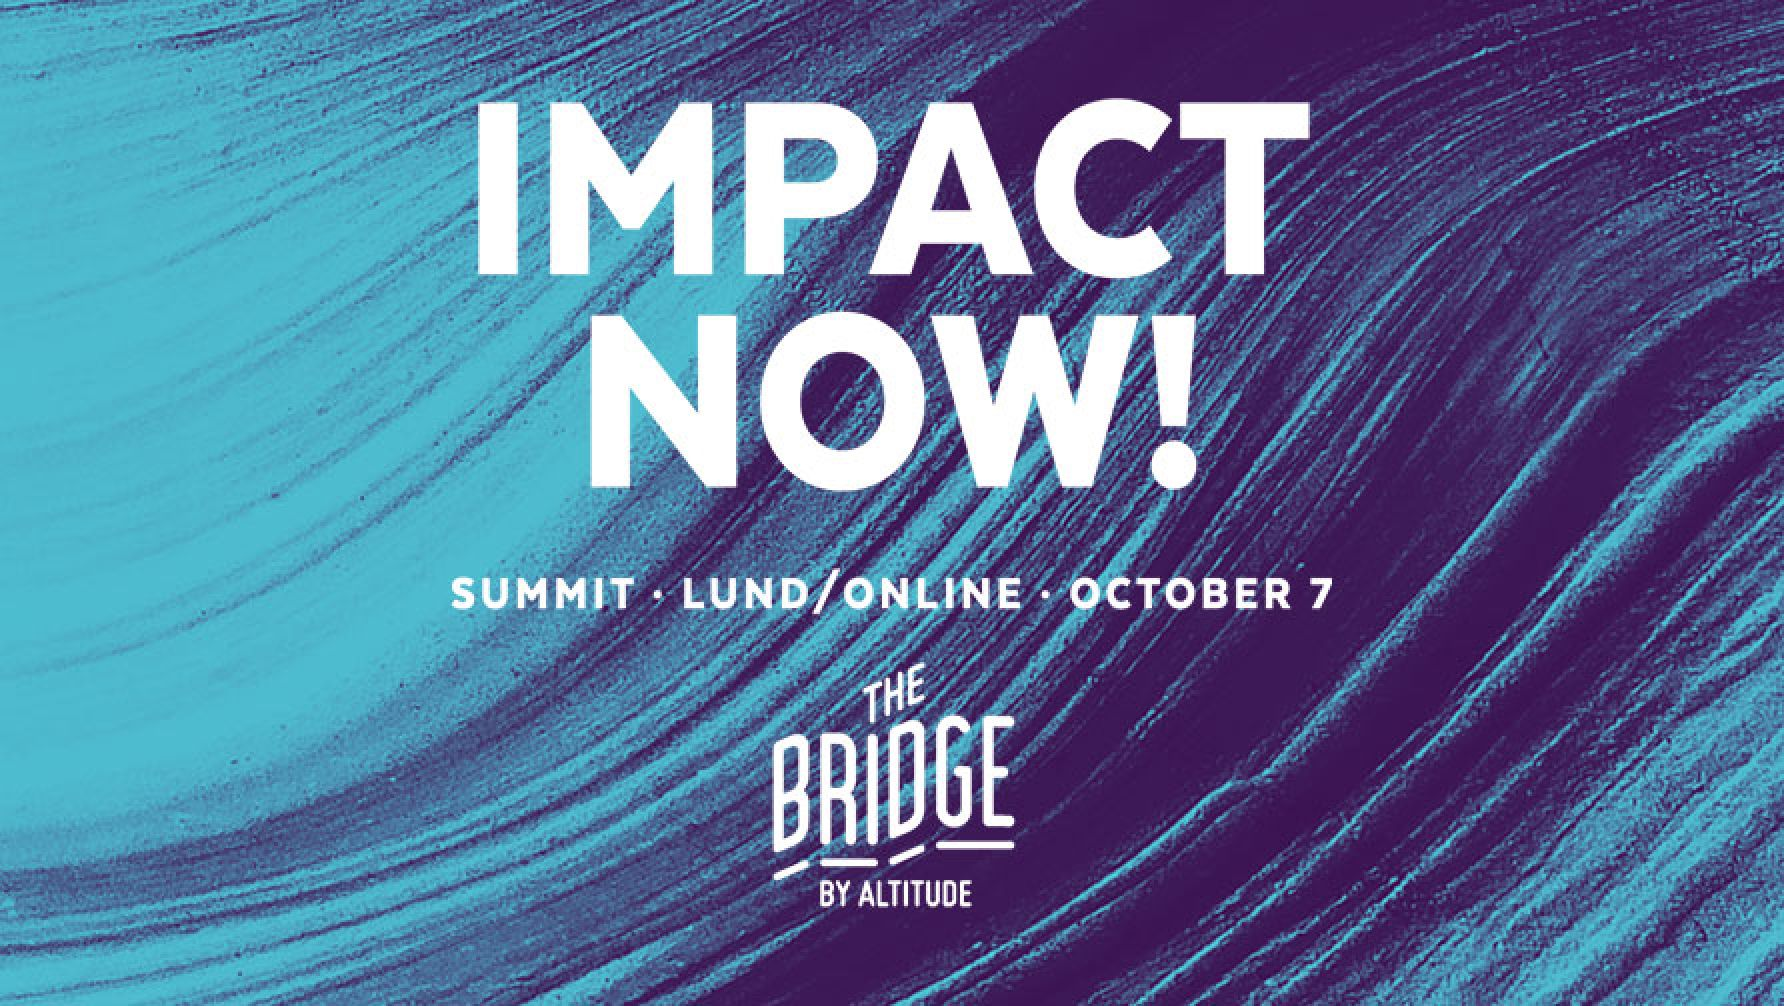 The Bridge Summit 2020: Impact now! [Updated program]